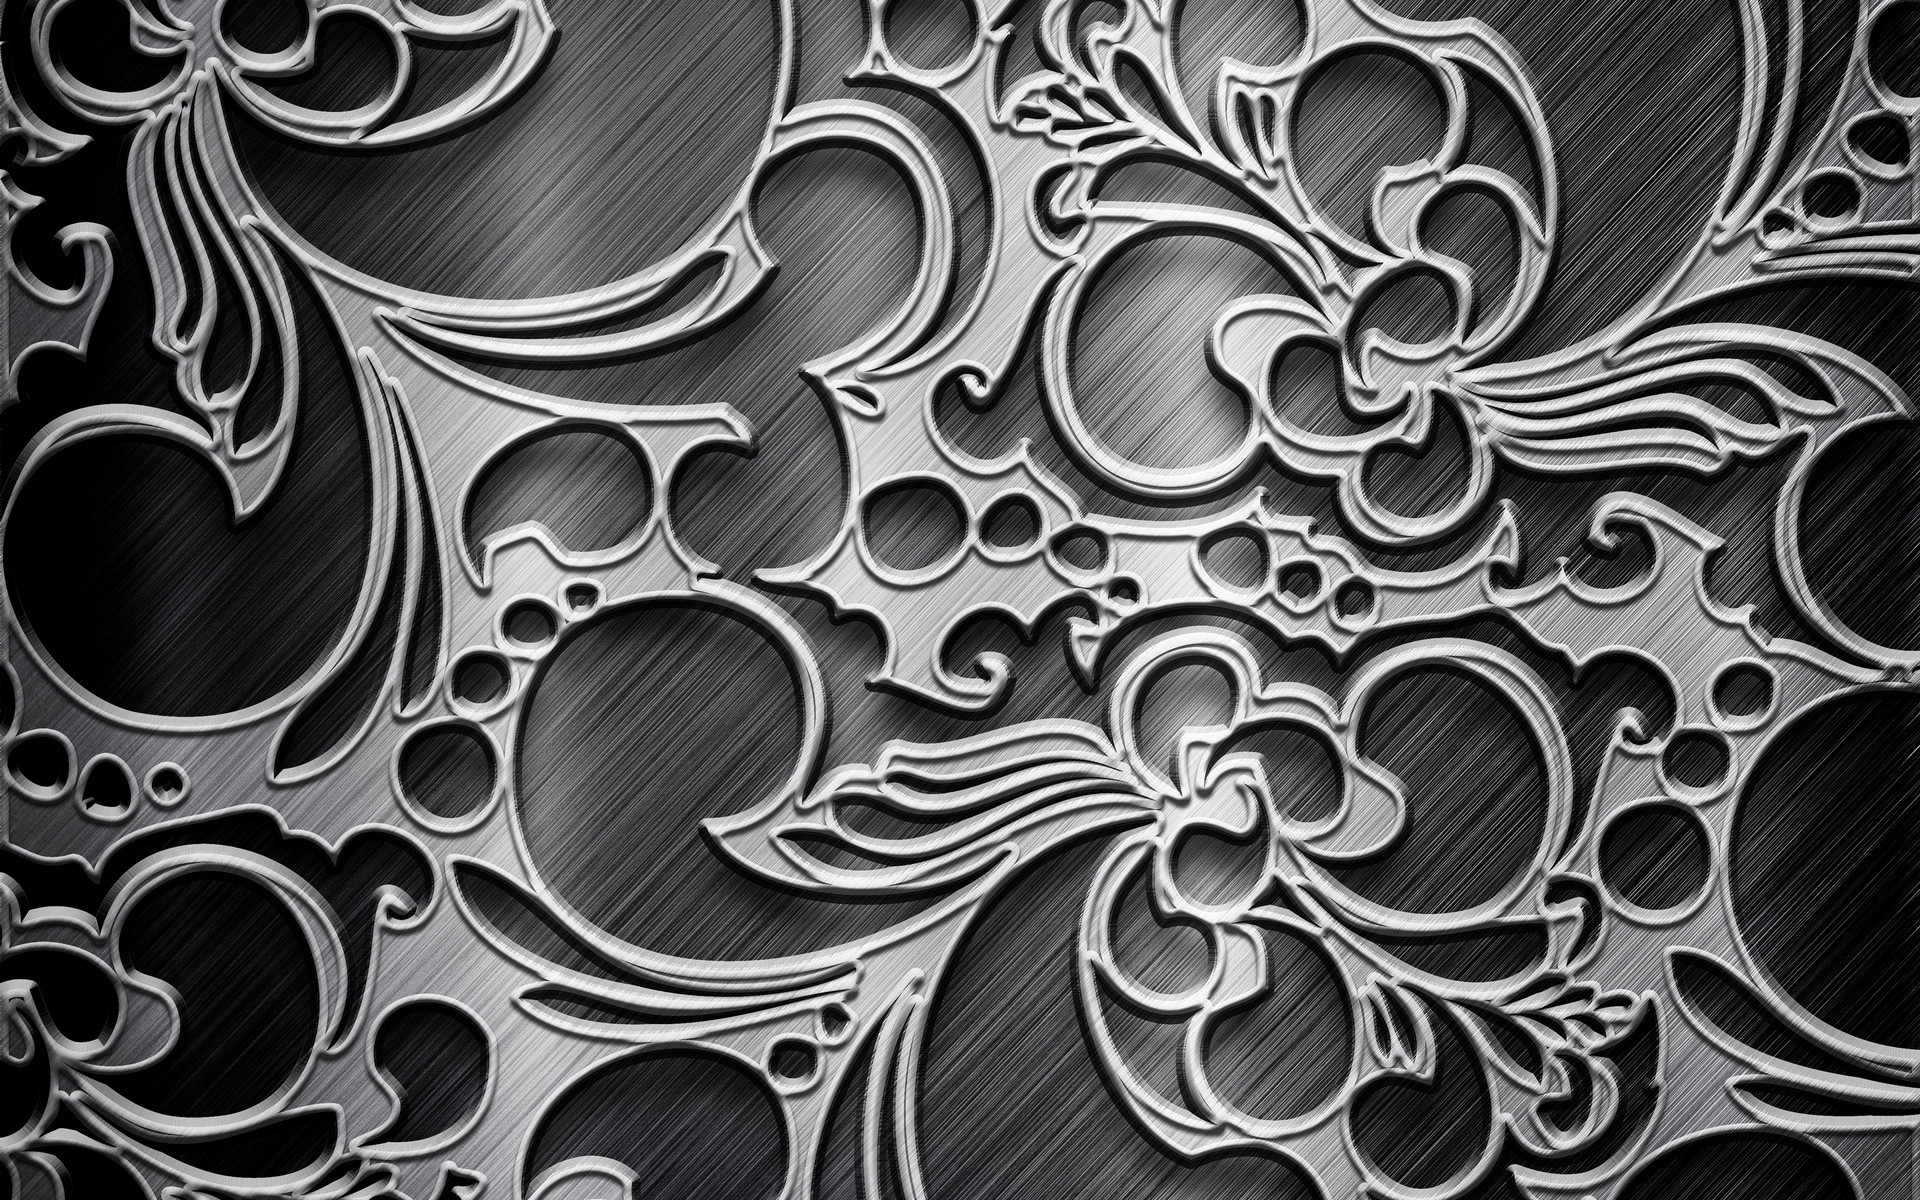 Silver Abstract Backgrounds Posted By Ryan Walker